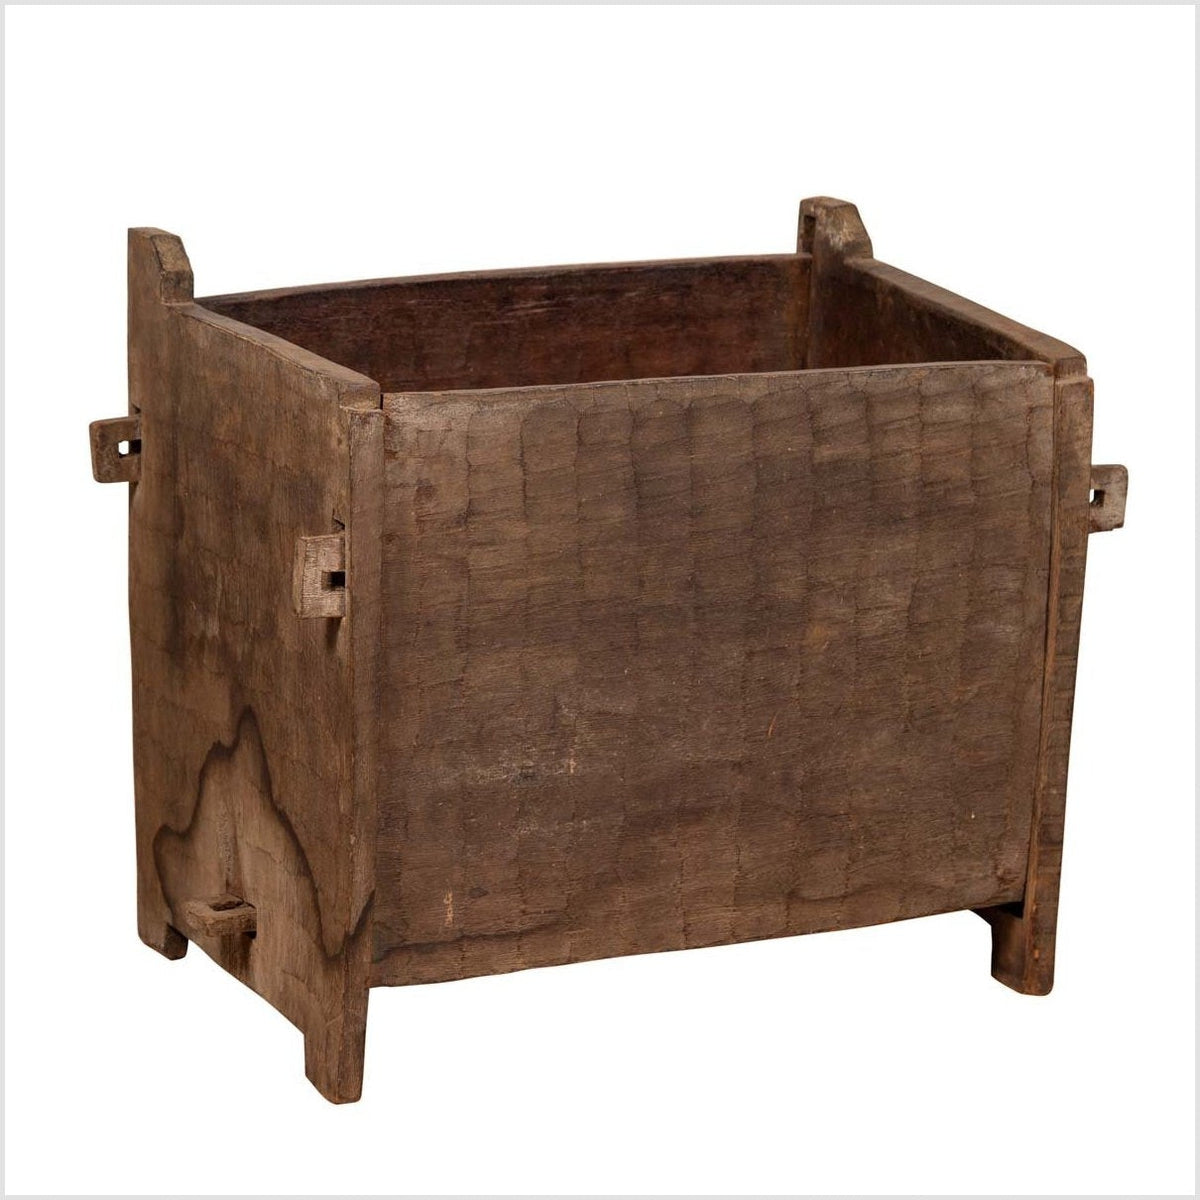 Antique Indian Wooden Planter Box with Weathered Patina and Protruding Accents